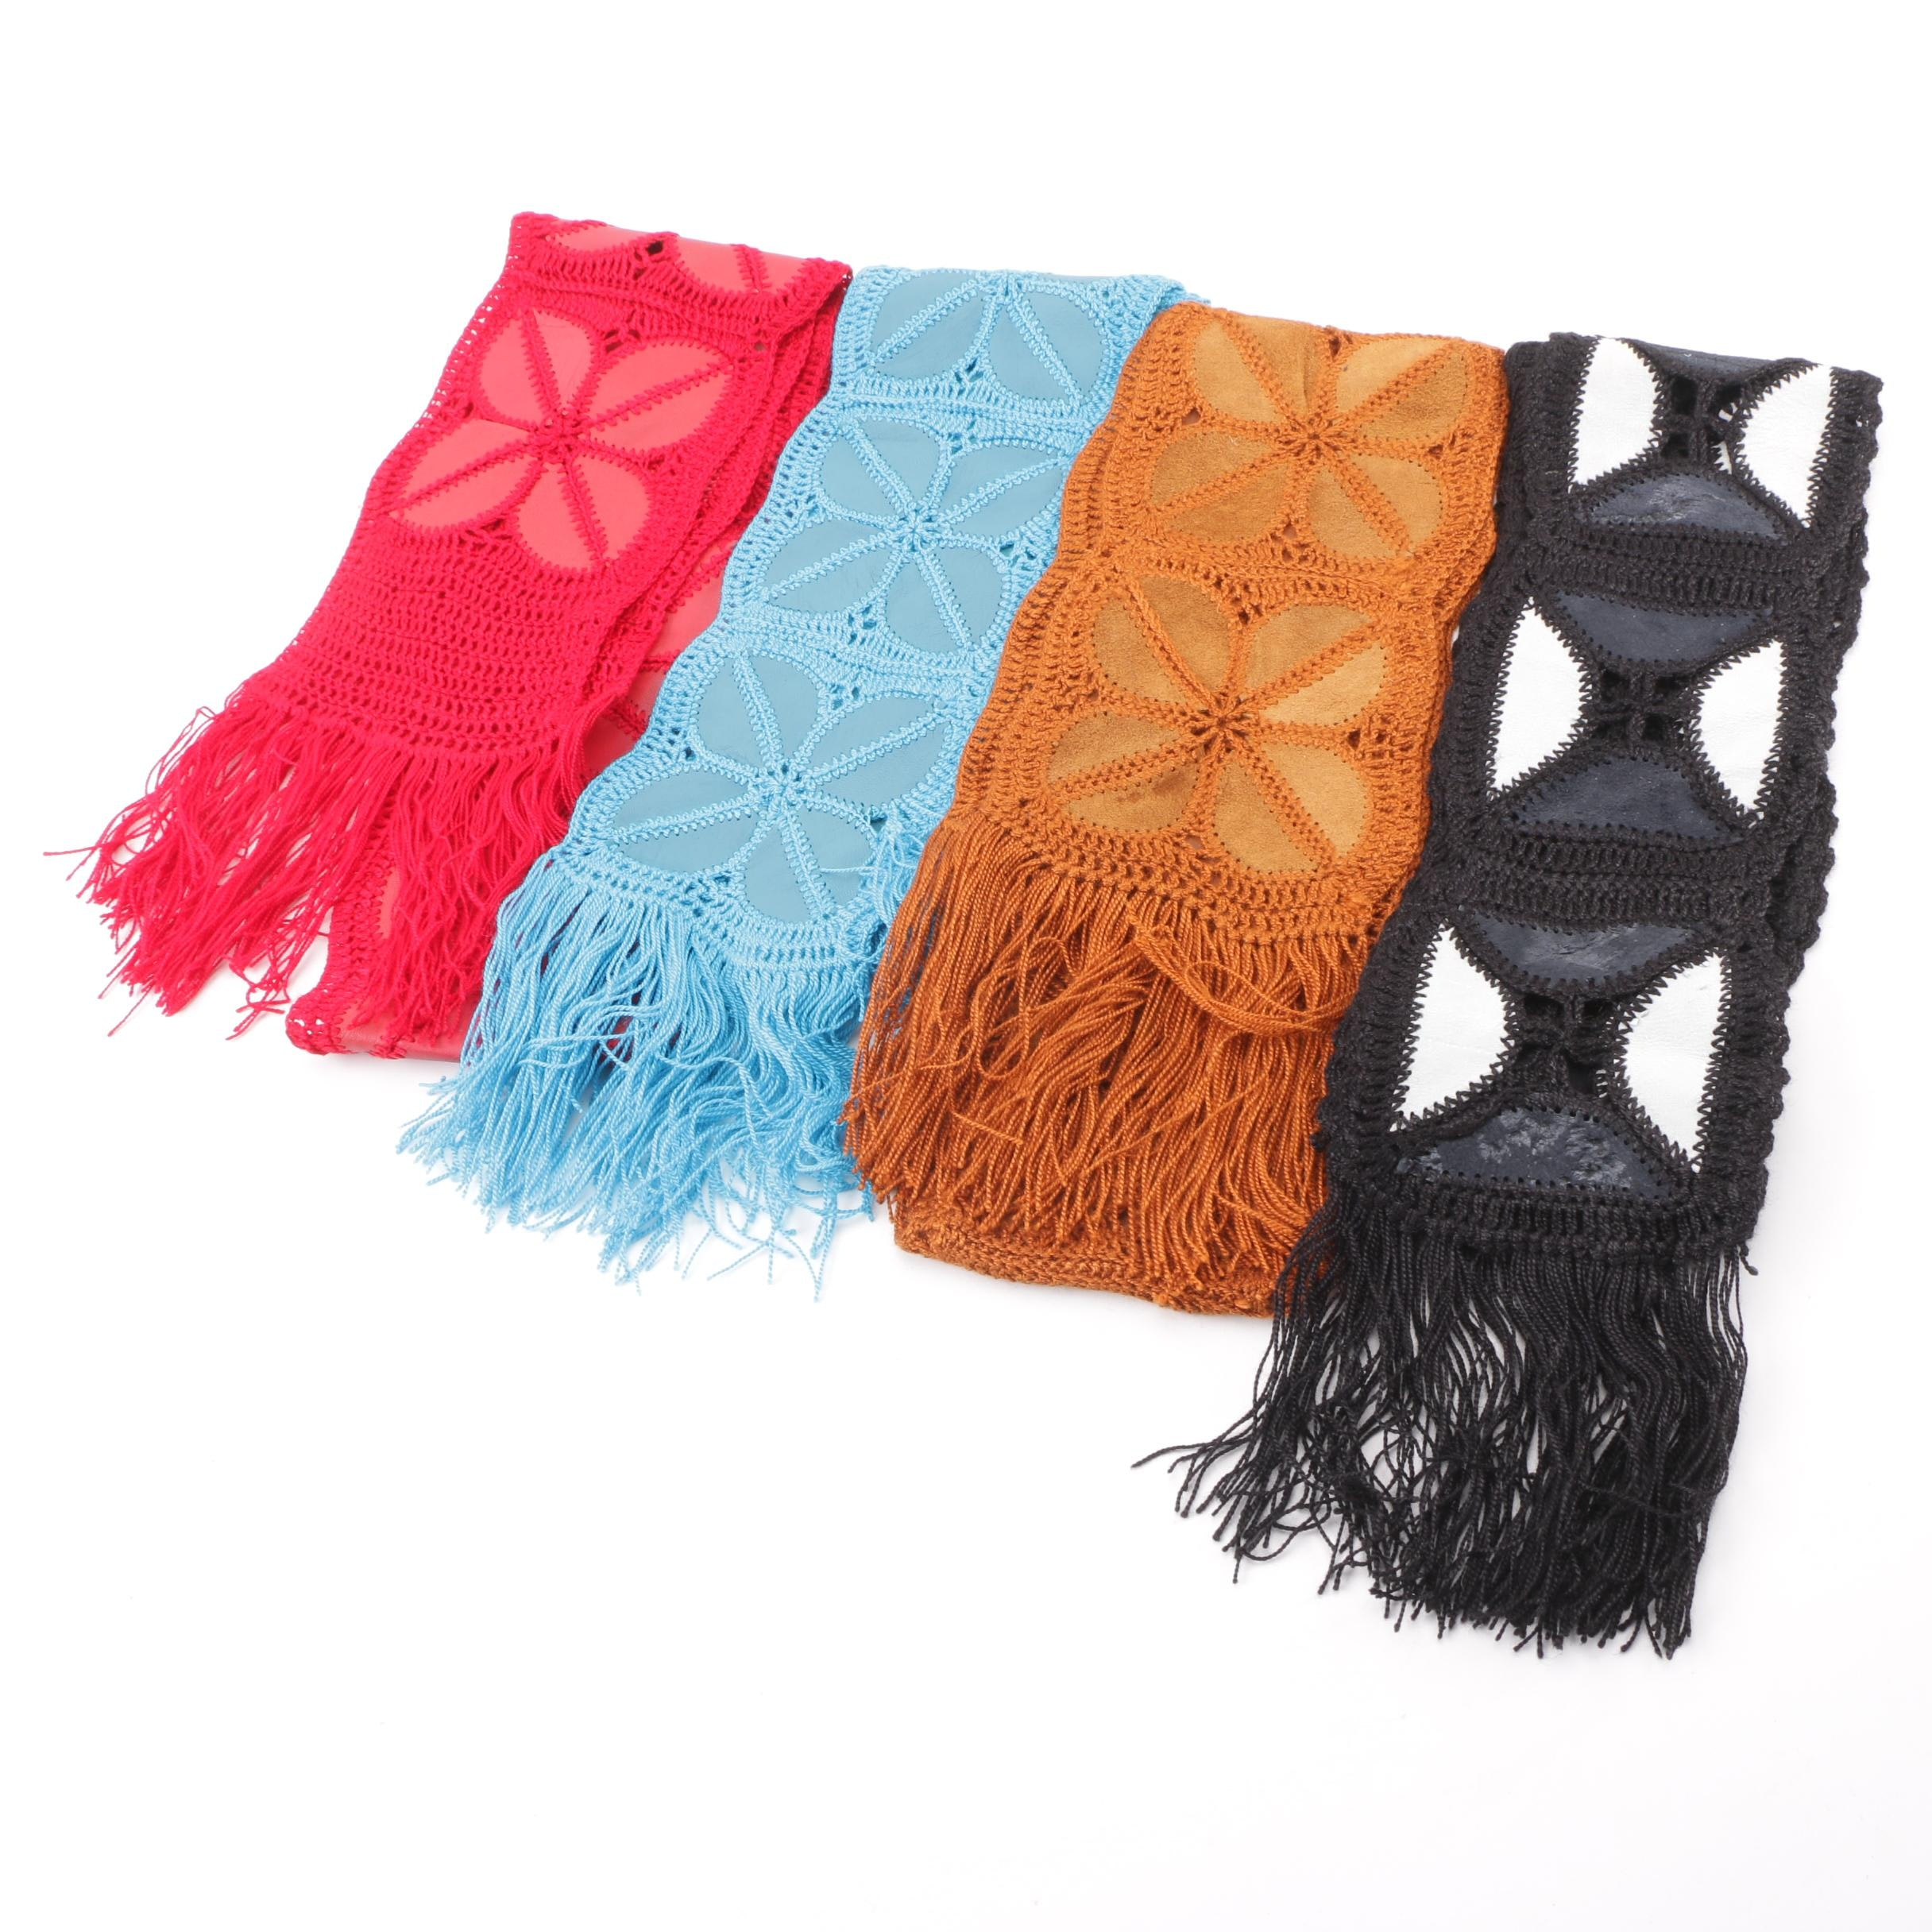 1970s Vintage Knit Scarves with Suede Accents